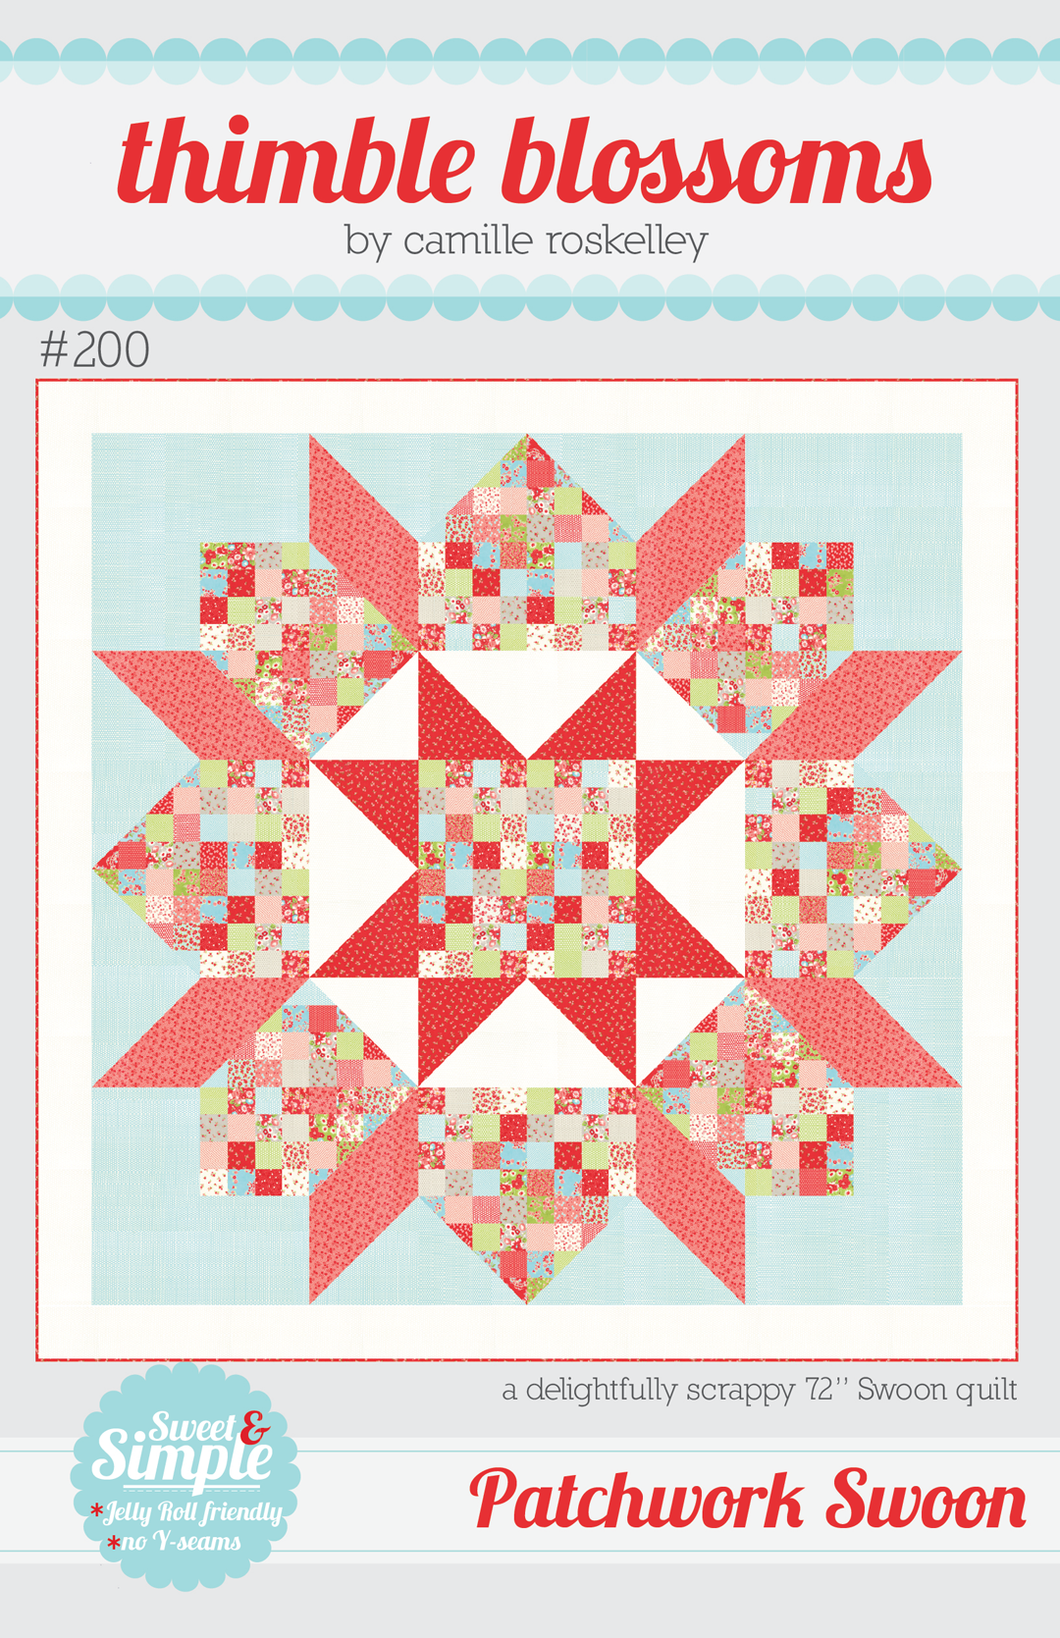 Patchwork Swoon - PDF pattern